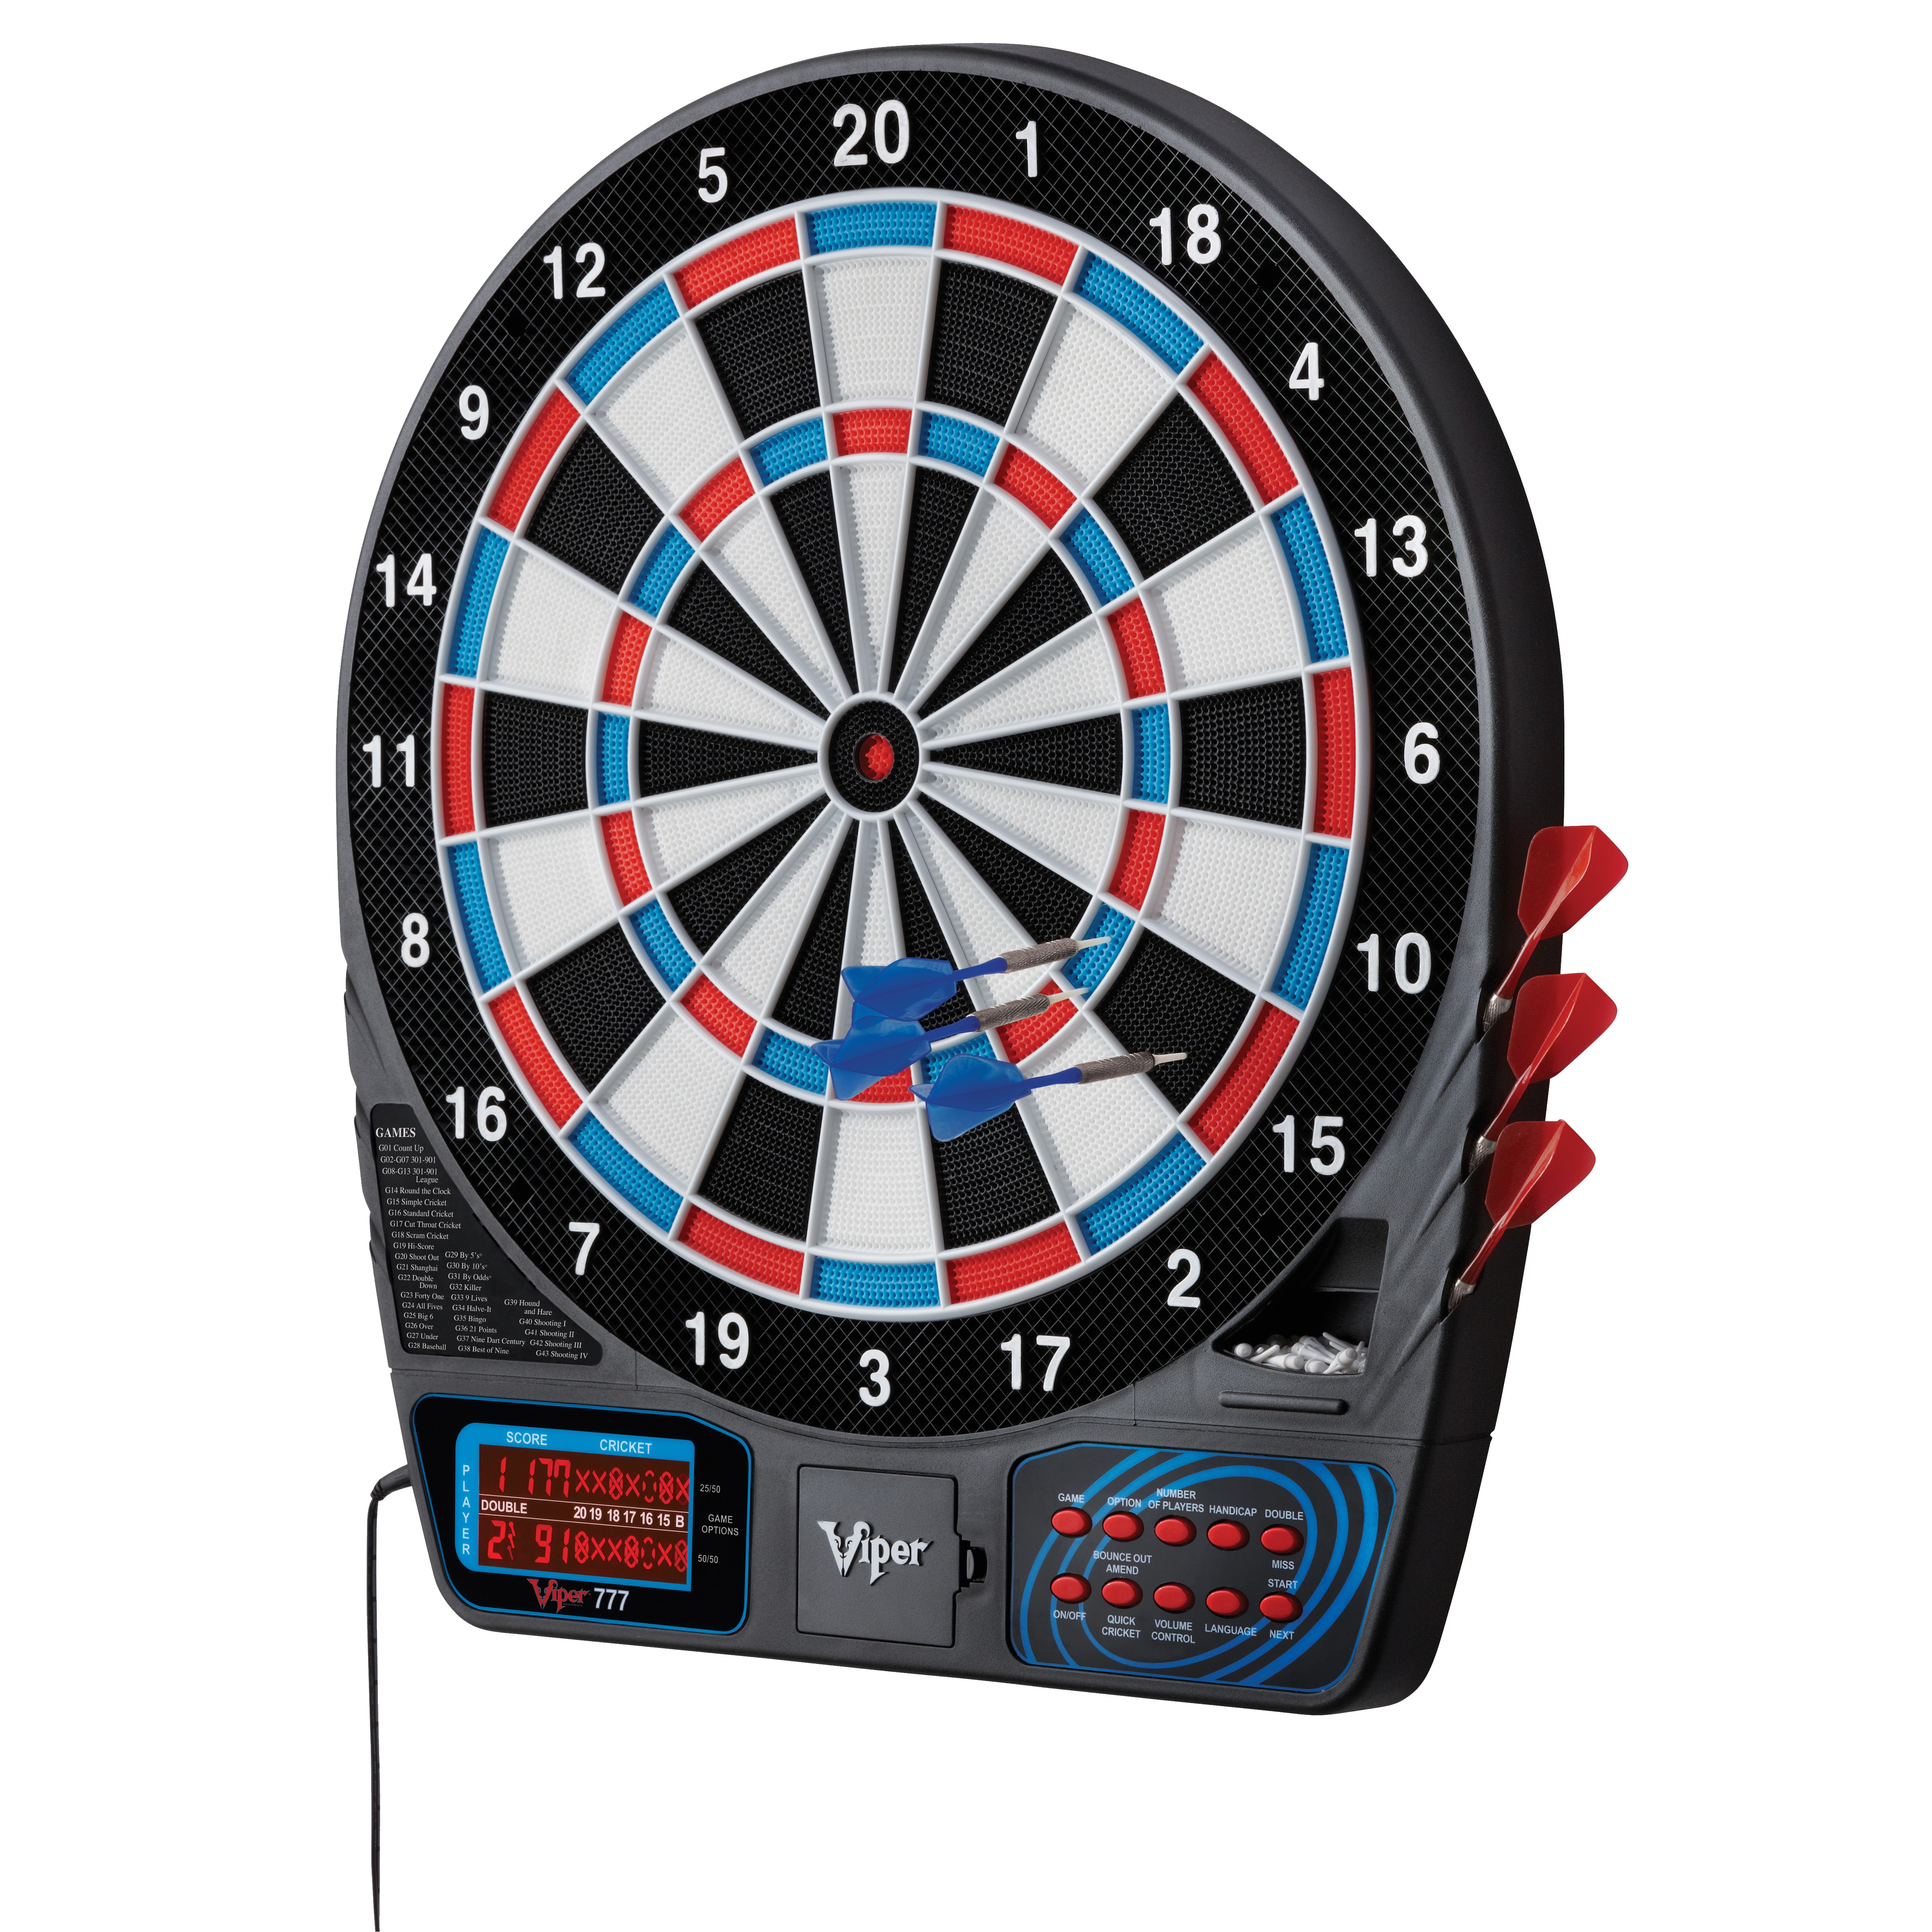 gld products viper 777 electronic dart board vpr1147